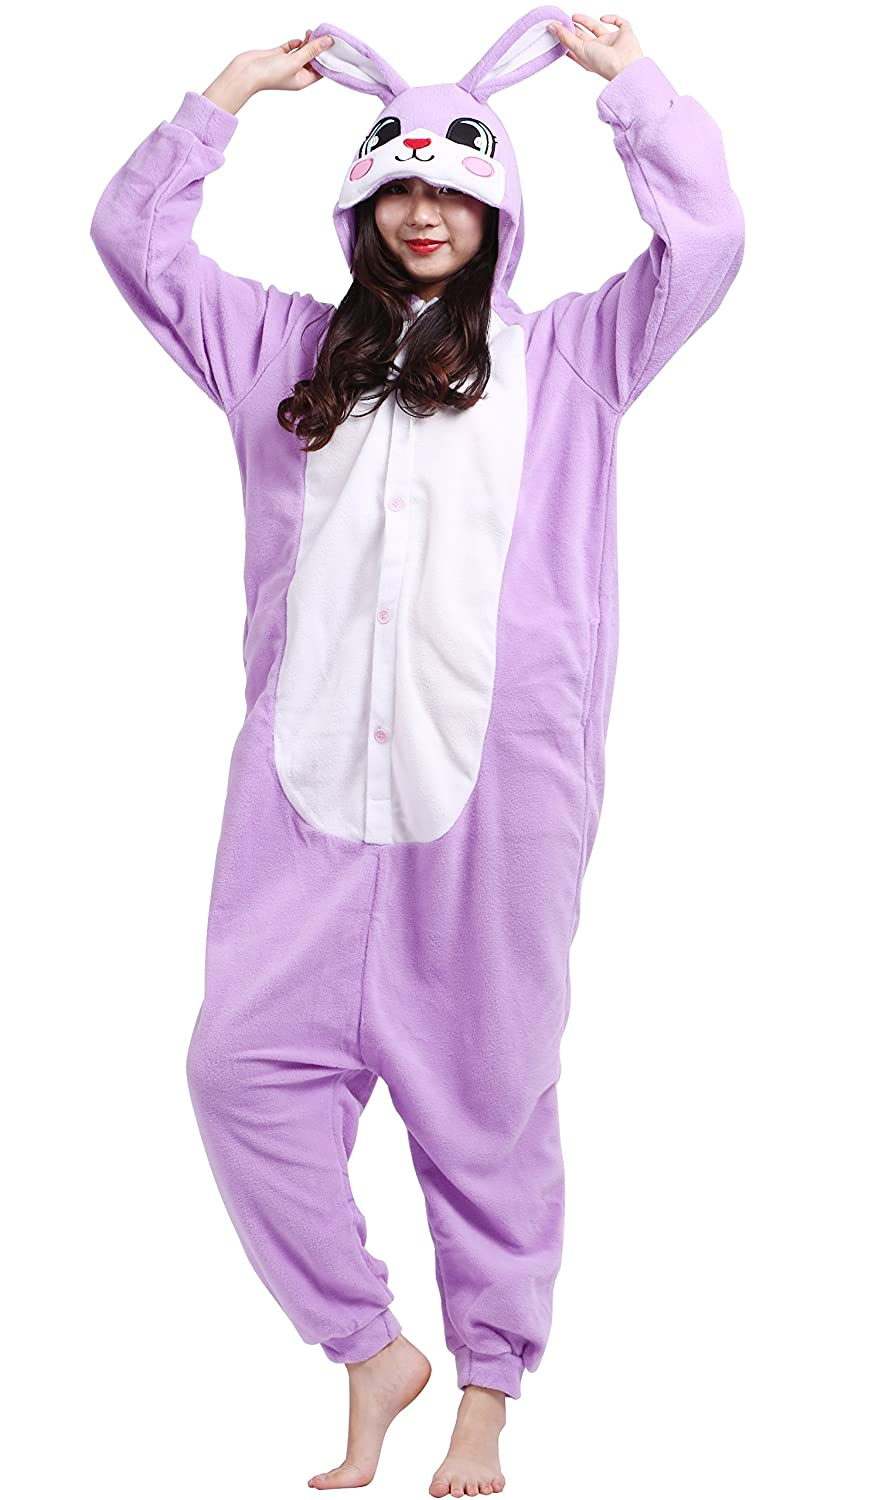 Amazon.com: Taigood Unisex Adult Animal Pajamas Plush One Piece Cosplay Purple Rabbit (140-187cm): Clothing